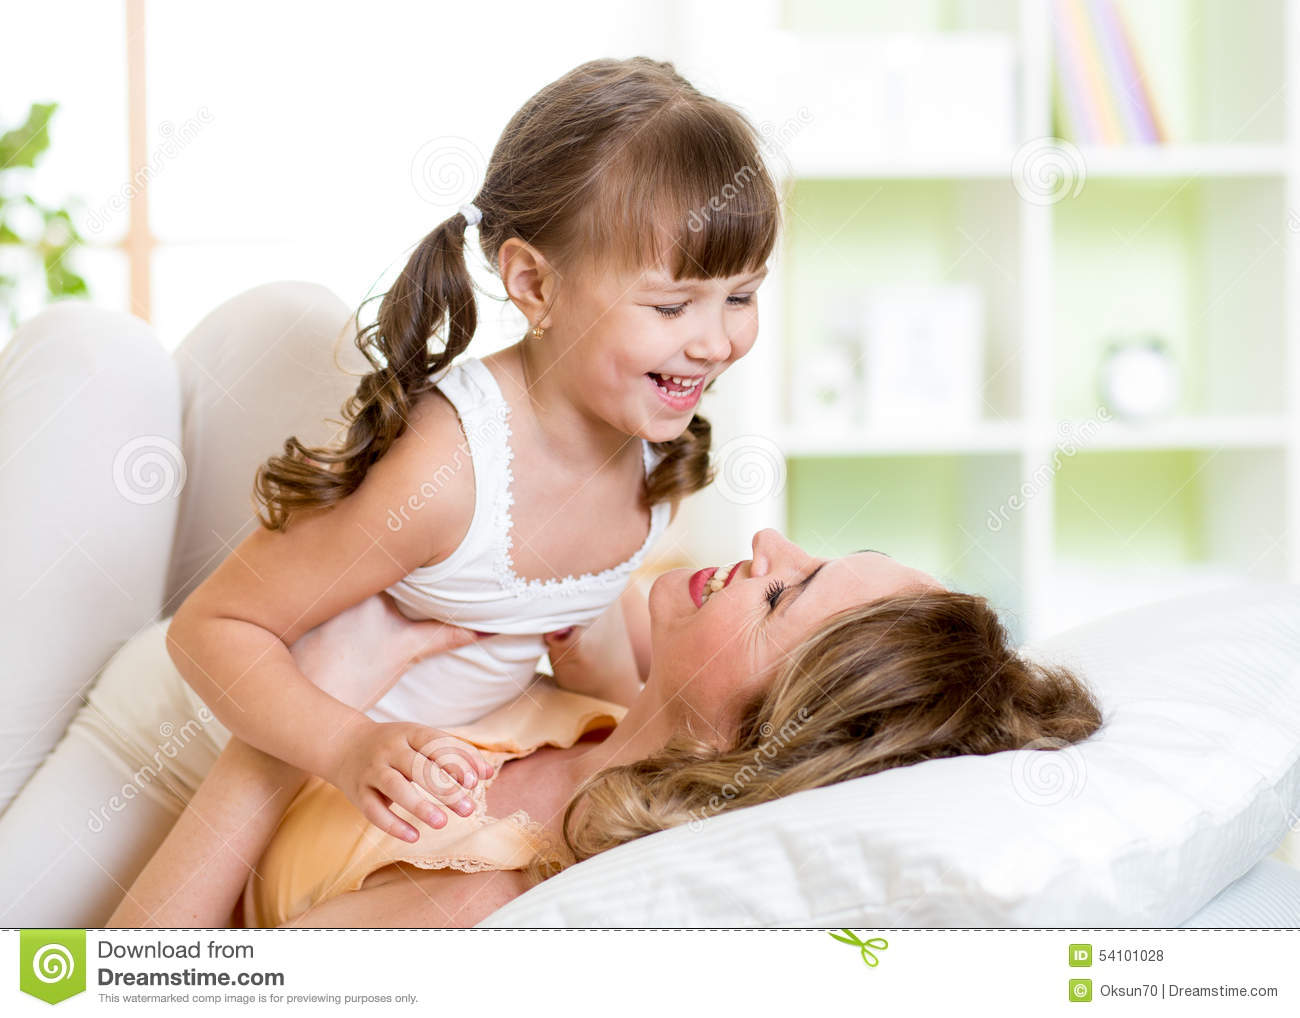 mom and child having fun in bed stock photo - image: 54101028